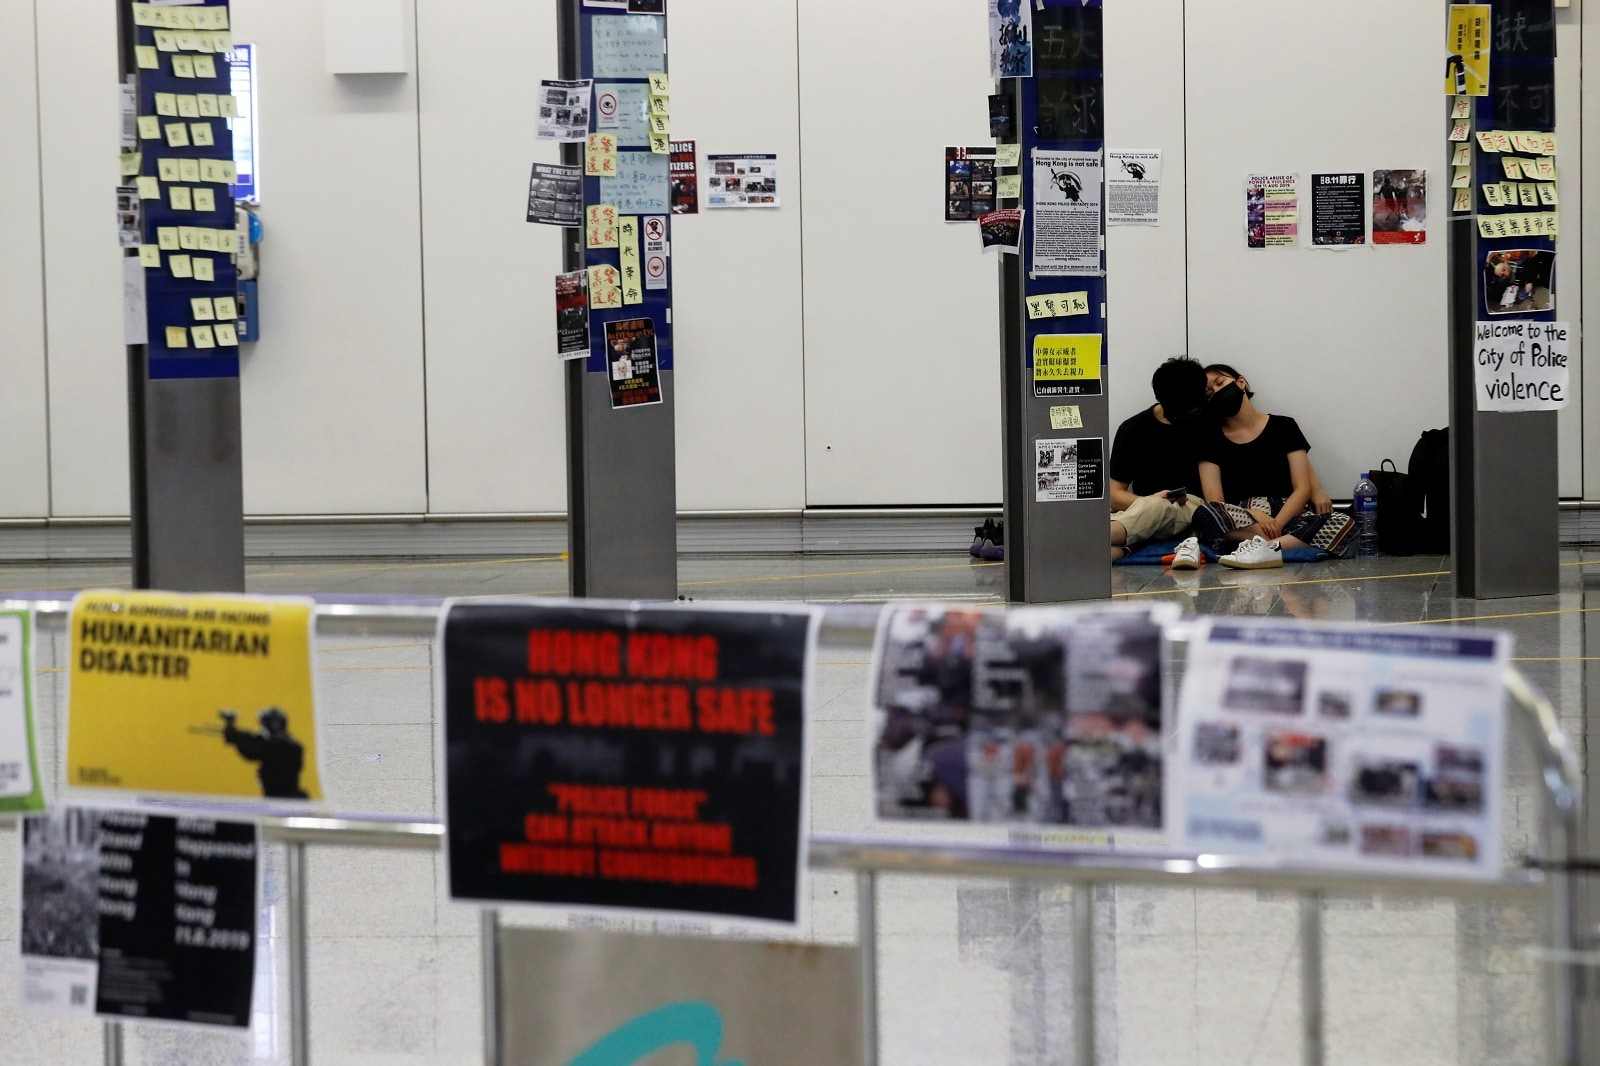 Anti-Extradition bill protesters couple sleep at arrival hall during a mass demonstration at the Hong Kong international airport, in Hong Kong, China, August 14, 2019. REUTERS/Tyrone Siu